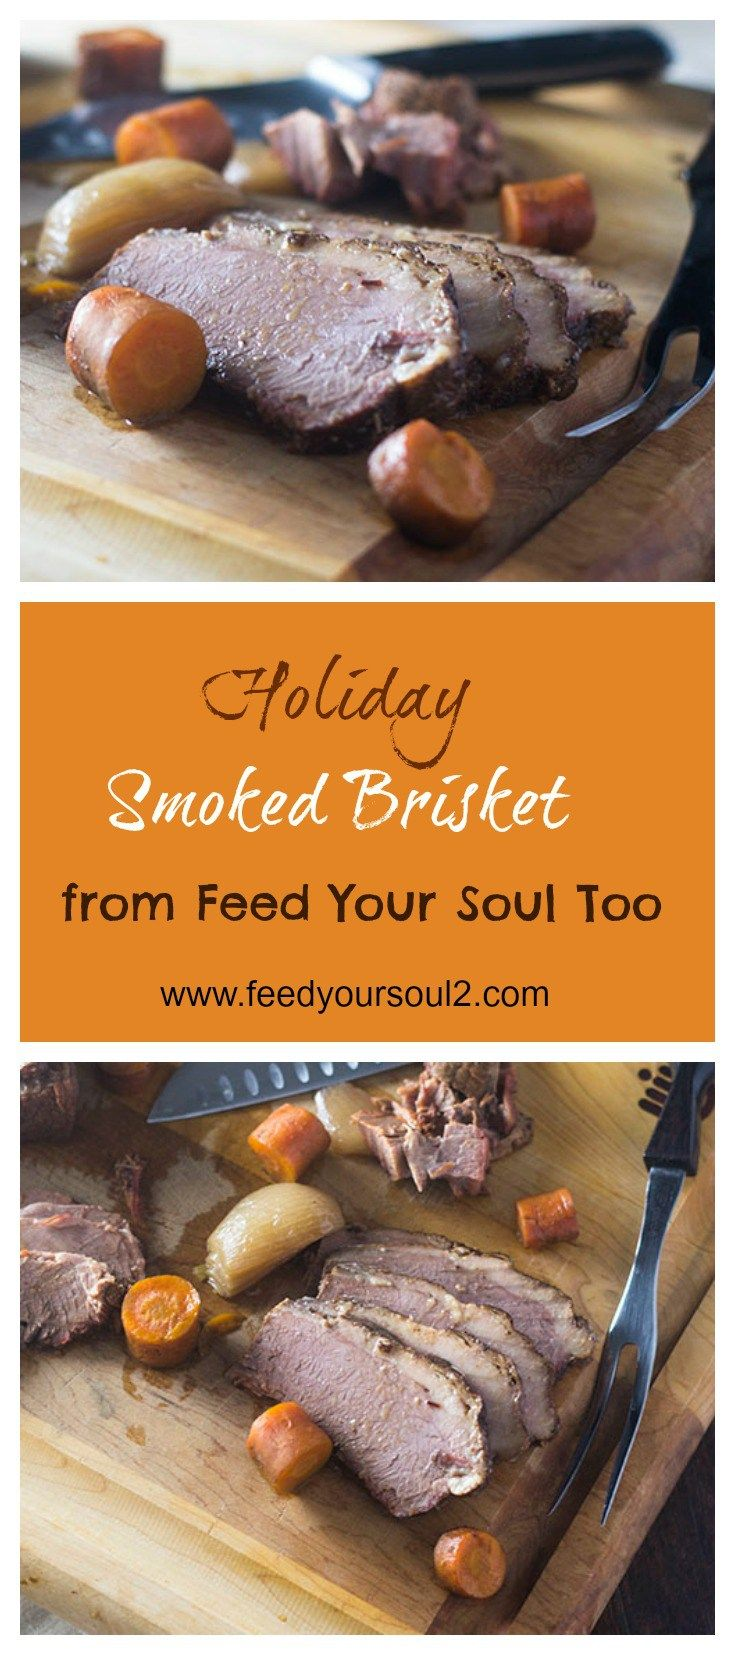 Holiday Smoked Brisket from Feed Your Soul Too